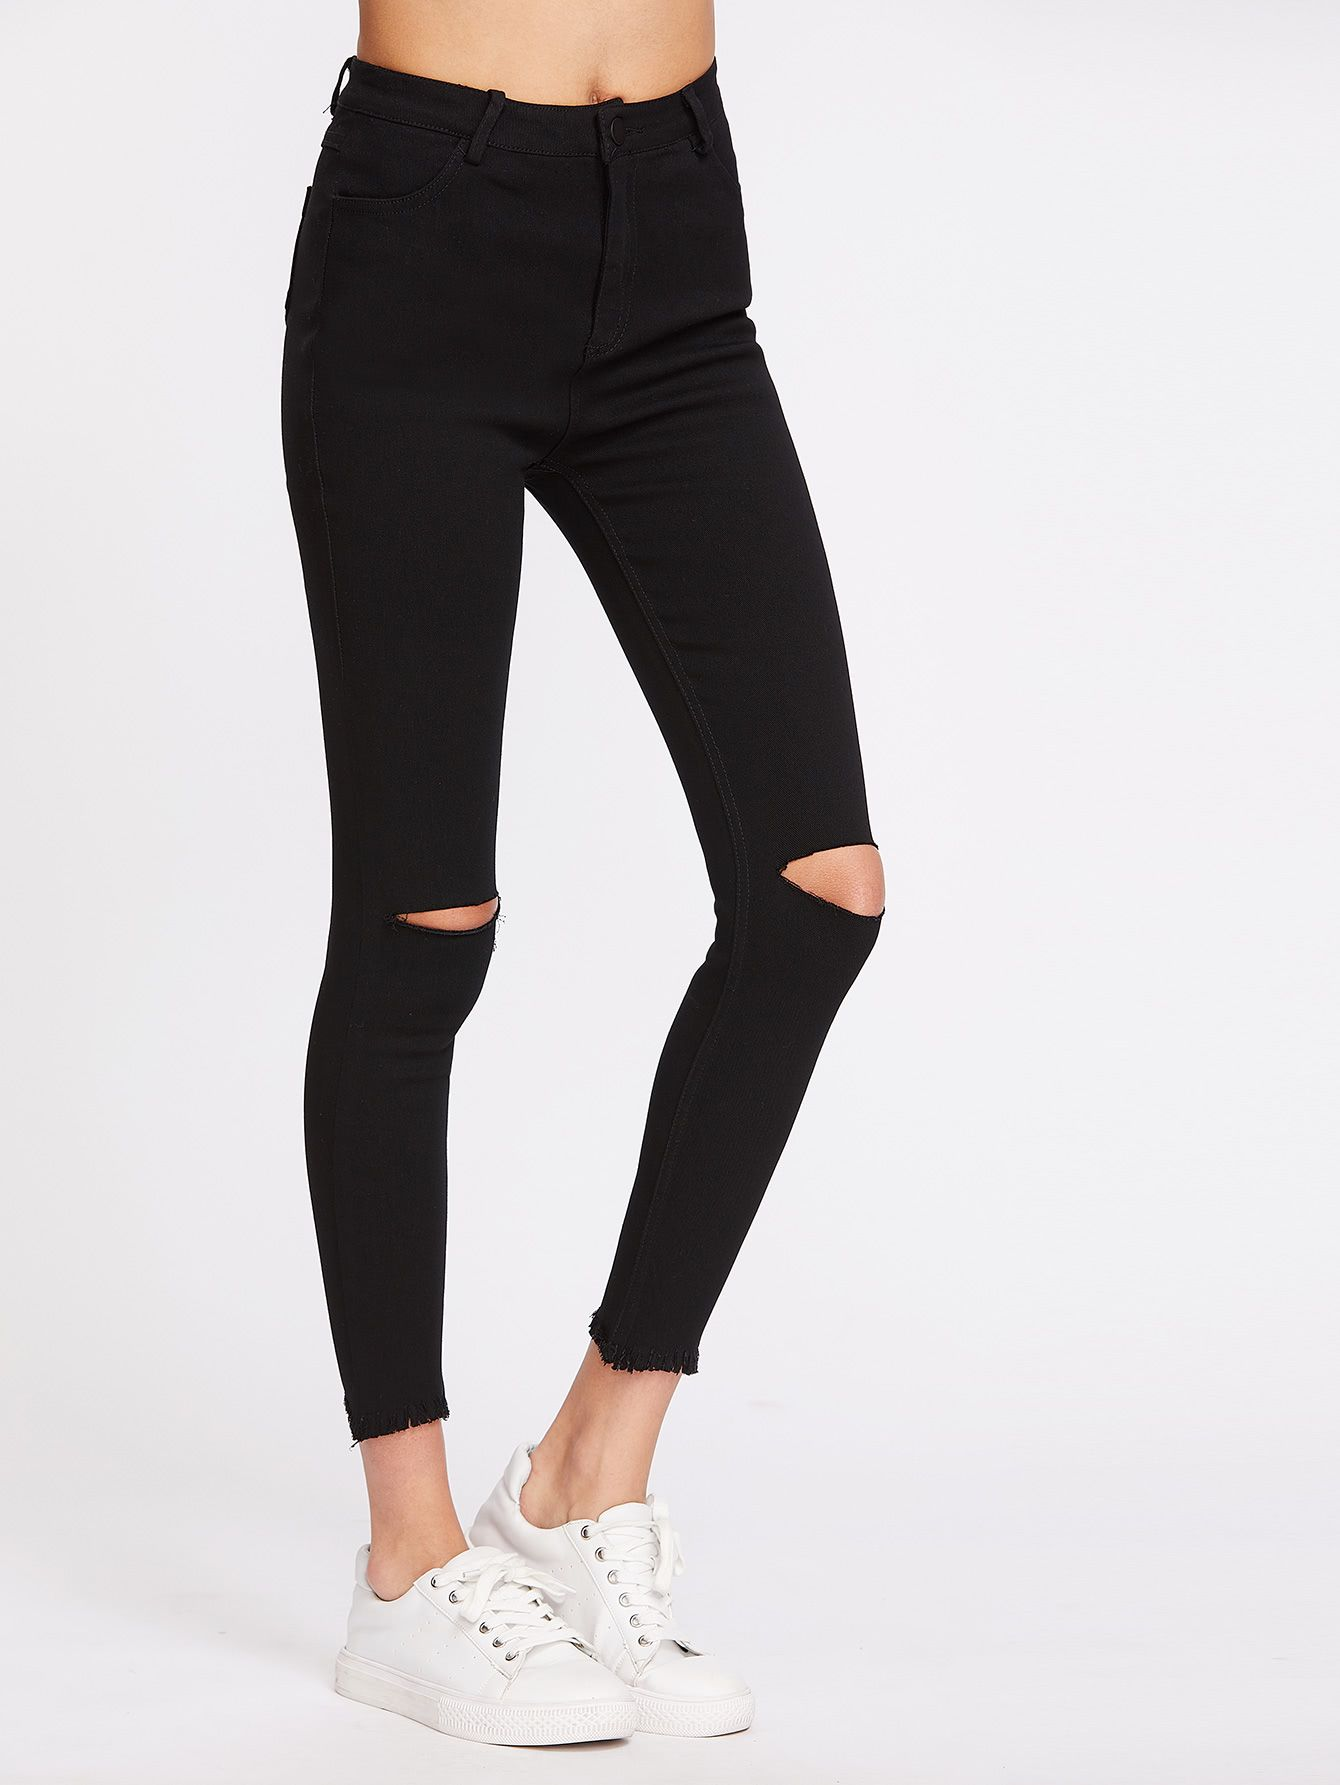 76b404cf9a Shop Knee Cut Frayed Hem Skinny Jeans online. SheIn offers Knee Cut Frayed  Hem Skinny Jeans & more to fit your fashionable needs.